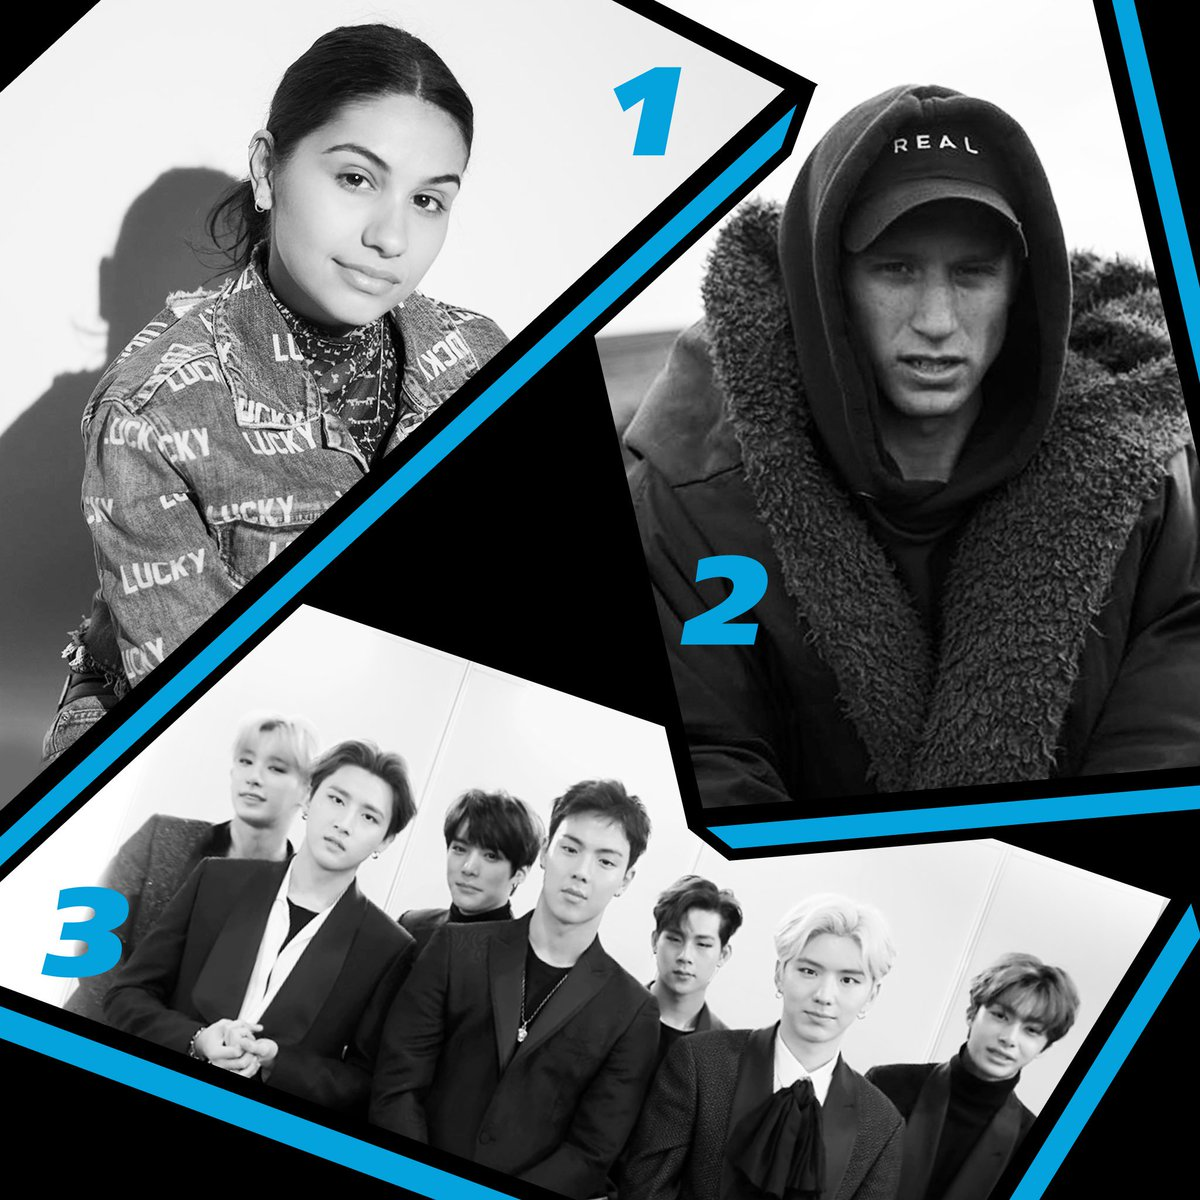 Heres Thursdays #RDTop3! 1. @alessiacara #RootingForYou 2. @nfrealmusic #Time 3. @OfficialMonstaX #WHODOULOVE? (f. @FrencHMonTanA)